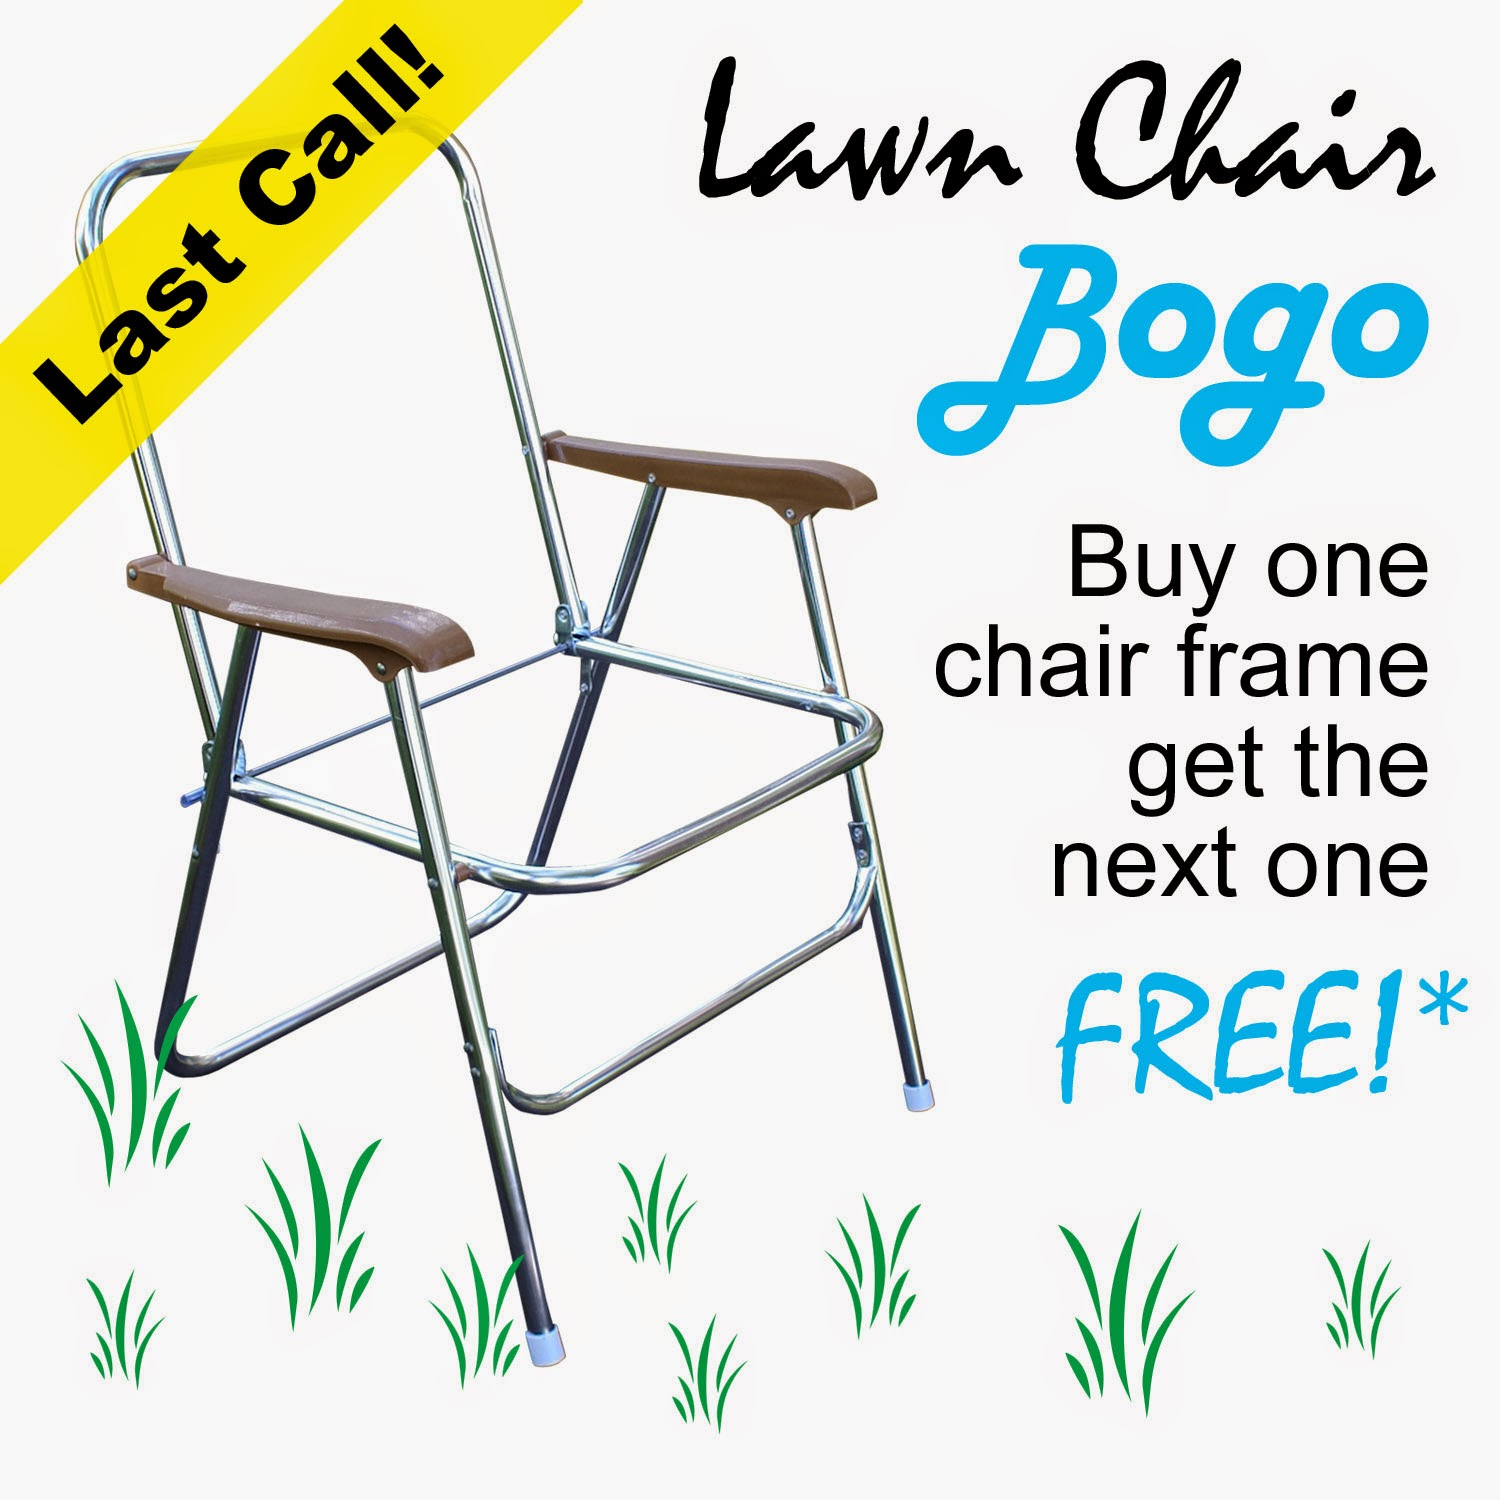 Last Chance to take advantage of our Lawn Chair BOGO!